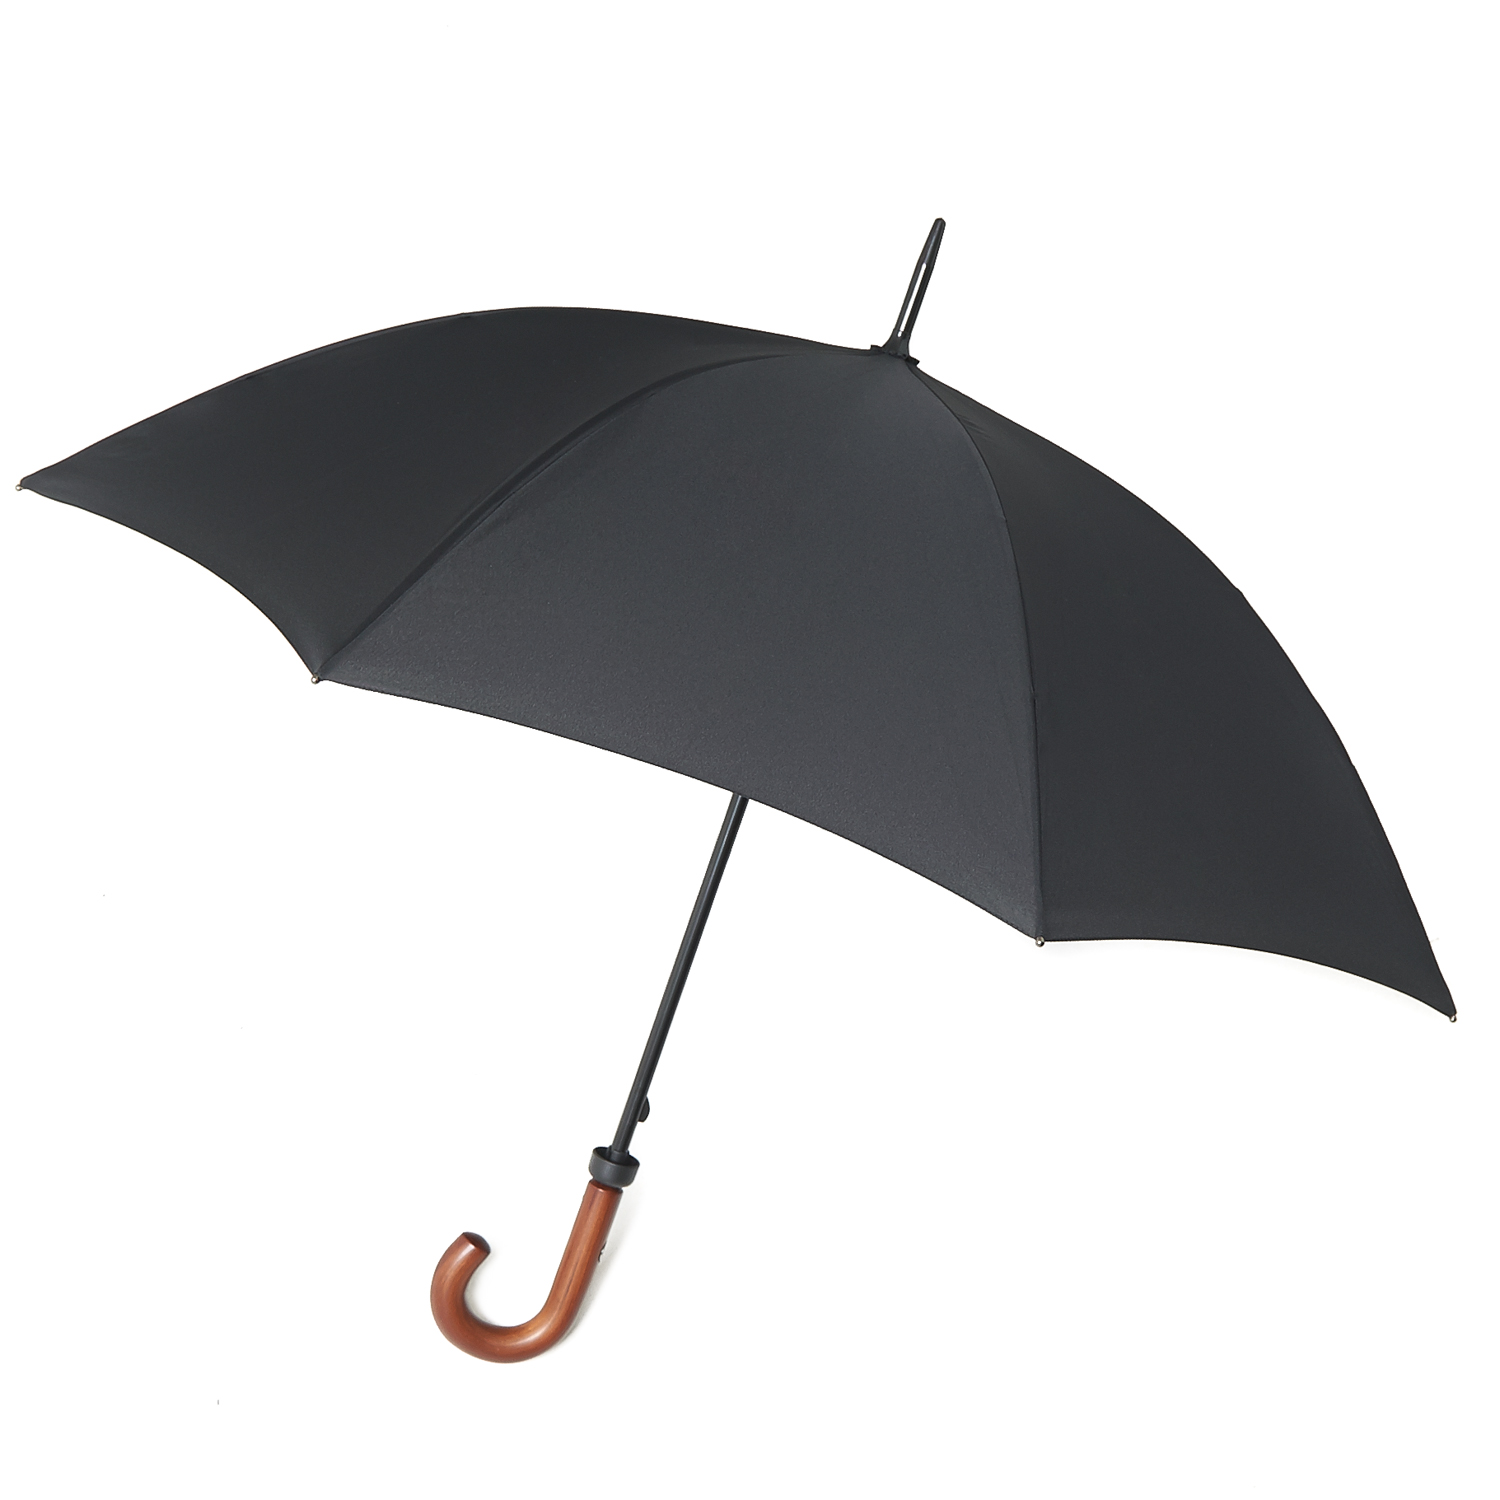 Black Umbrella - Download Images, Photos and Pictures.